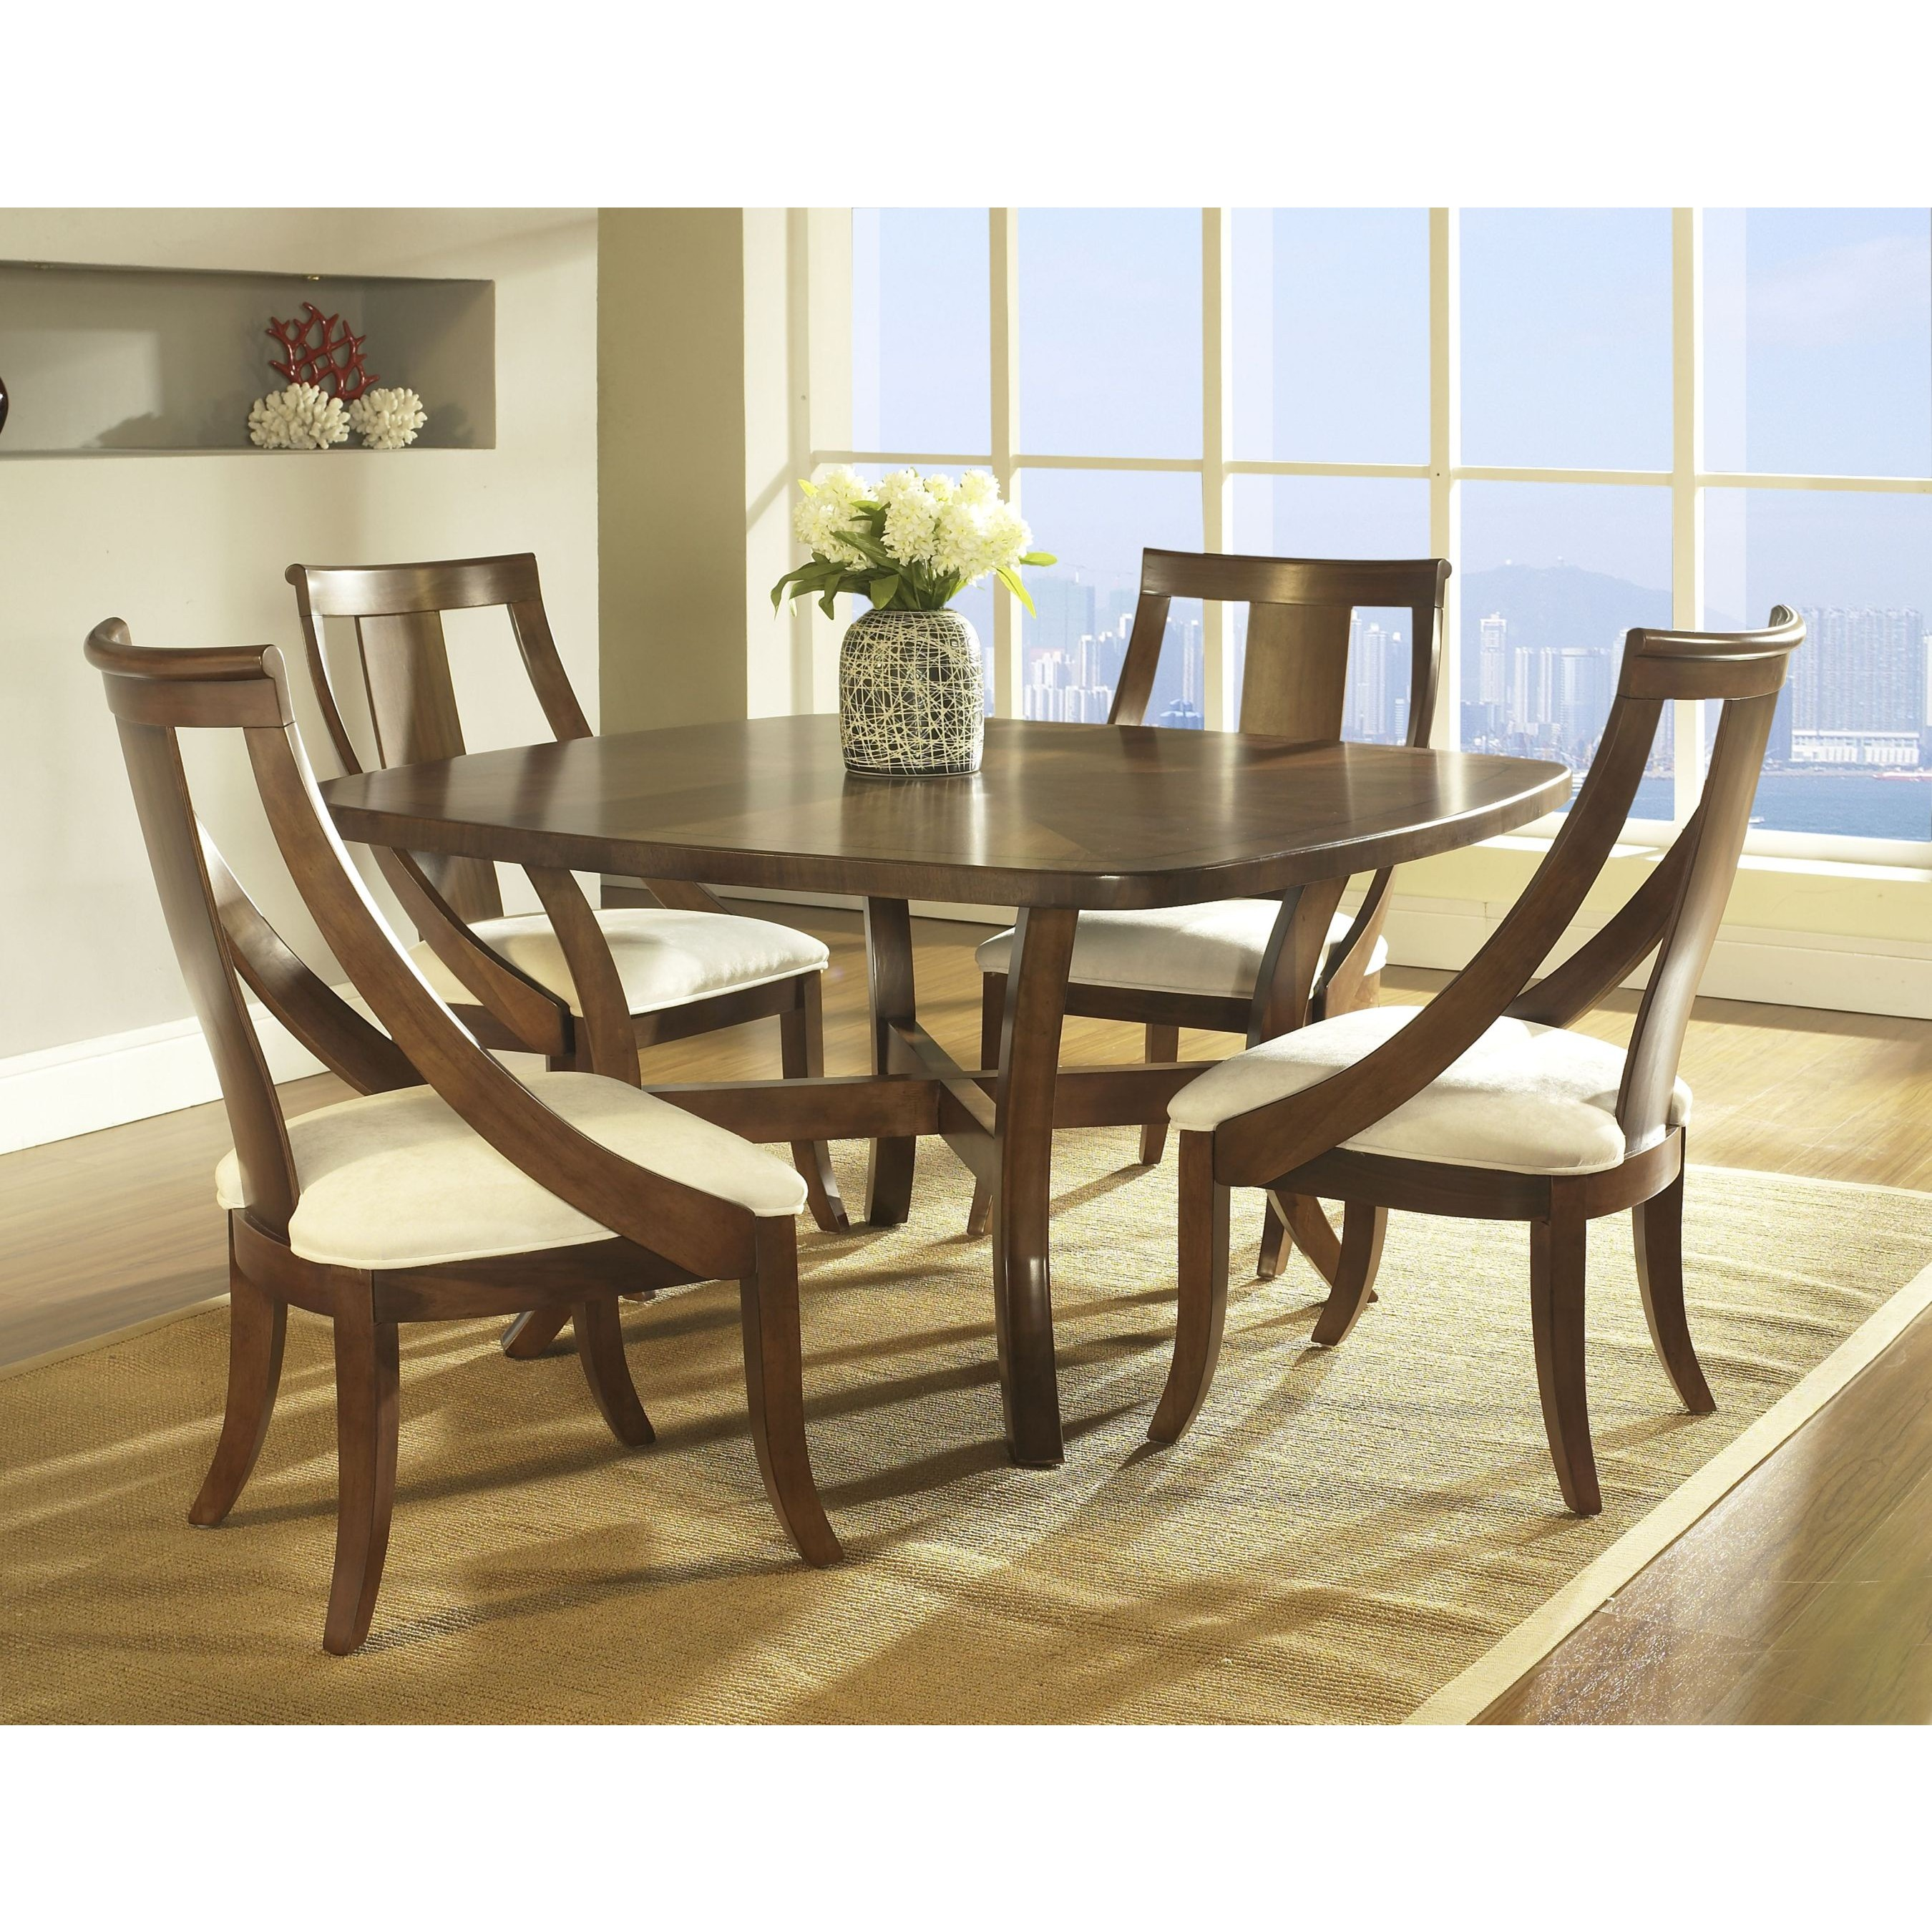 Wooden square dining table - Wooden Square Dining Room Table With 4 Chairs And Warm Rug